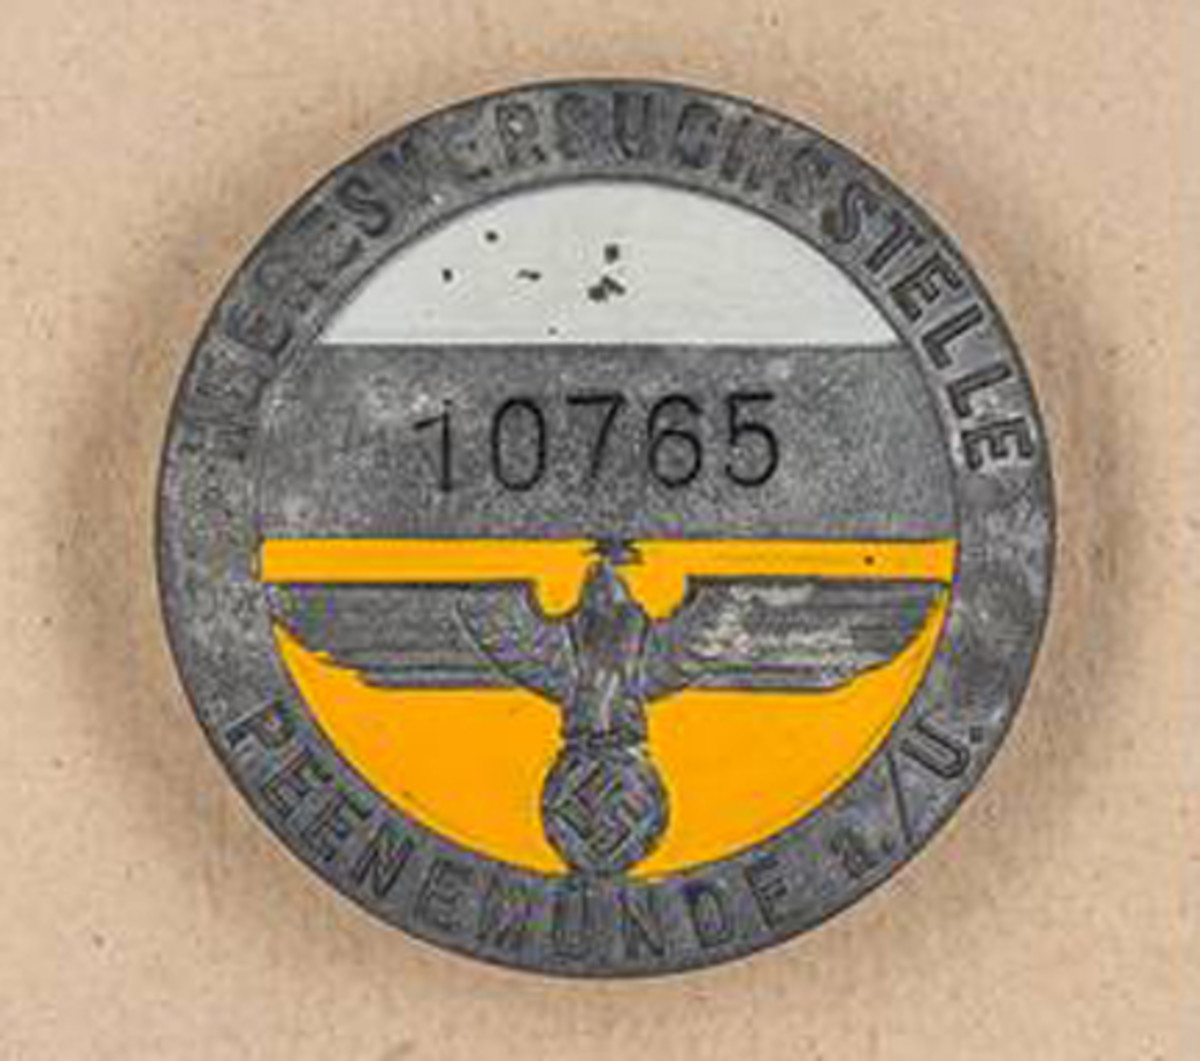 This original badge sold for an undisclosed amount in 2015.